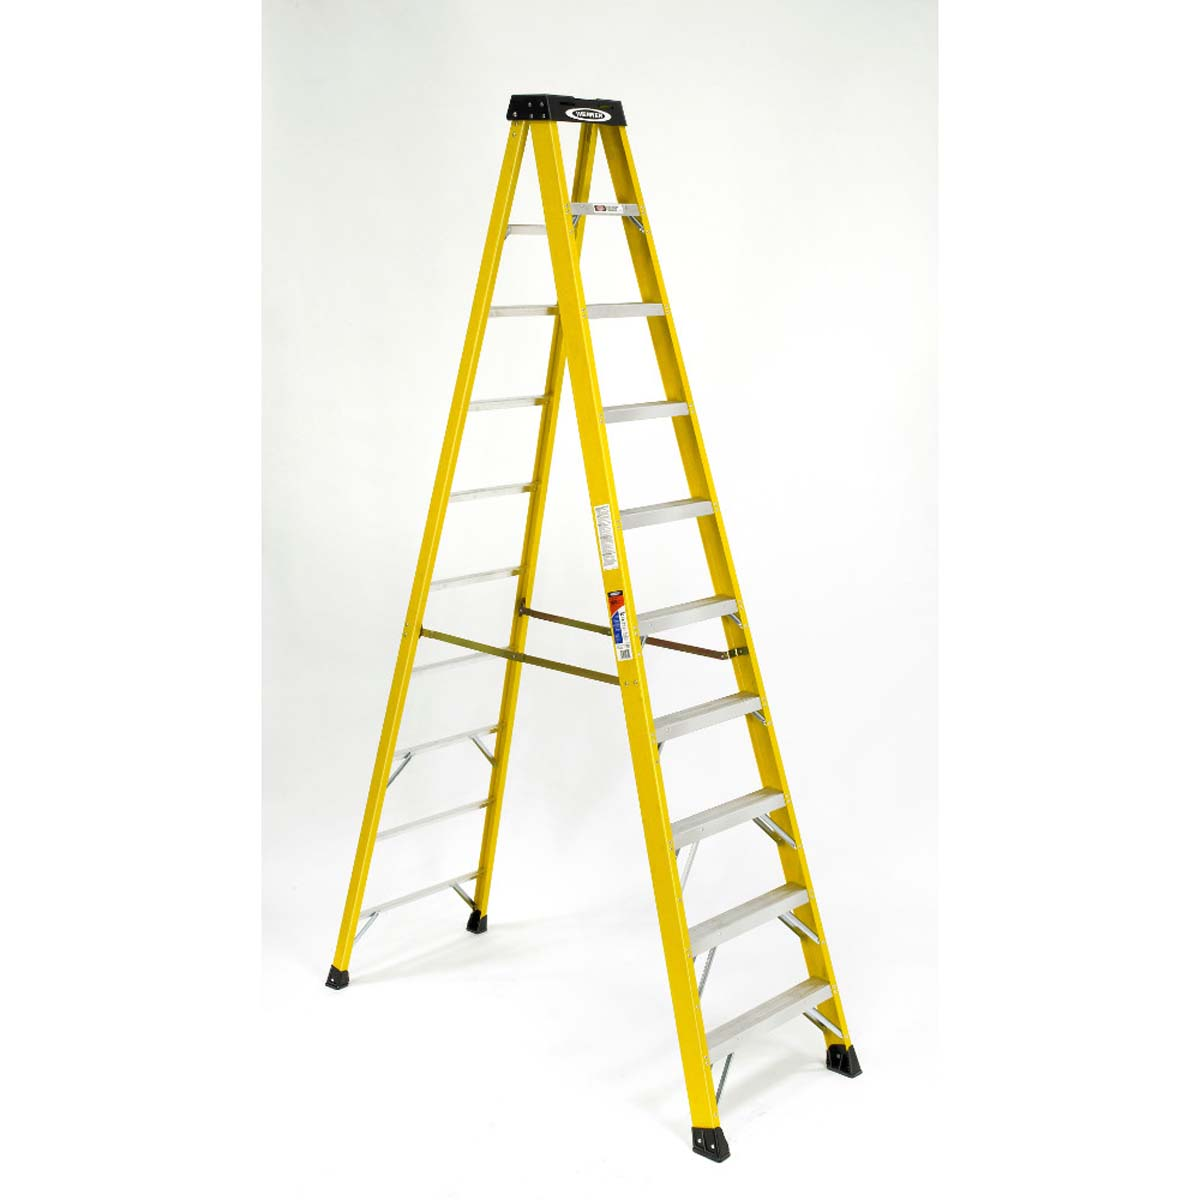 Fiberglass 10 ft Step Ladder